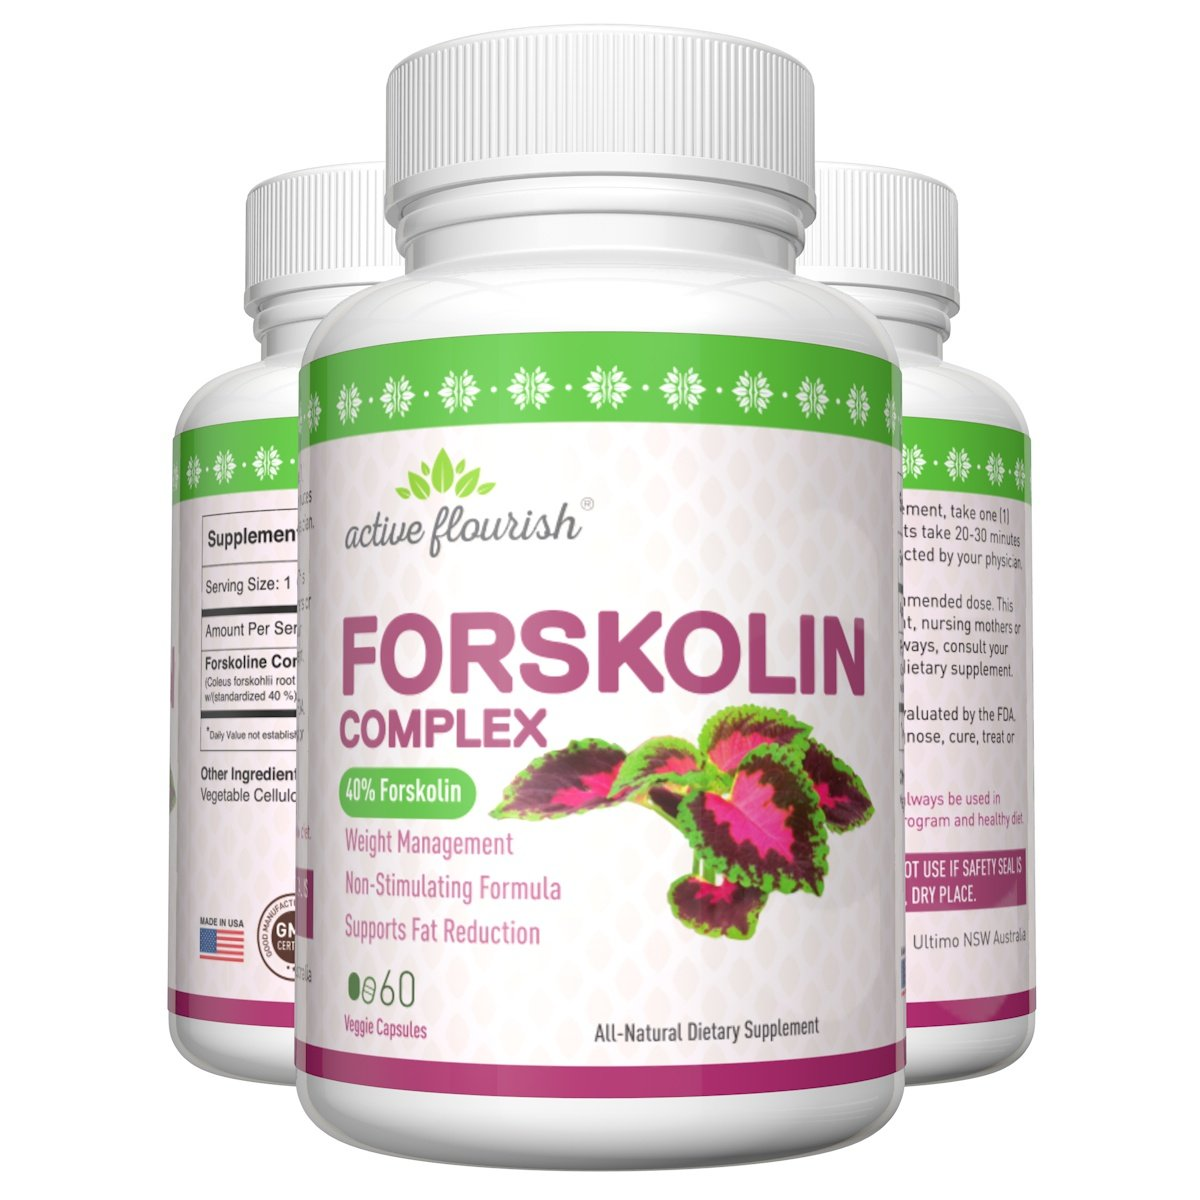 Forskolin 40%, All-Natural Weight Loss, Increase Lean Body Mass, Potential Treatment for Treatment of Bladder Infections and Hypertension electron beam induced mass loss of sensitive materials